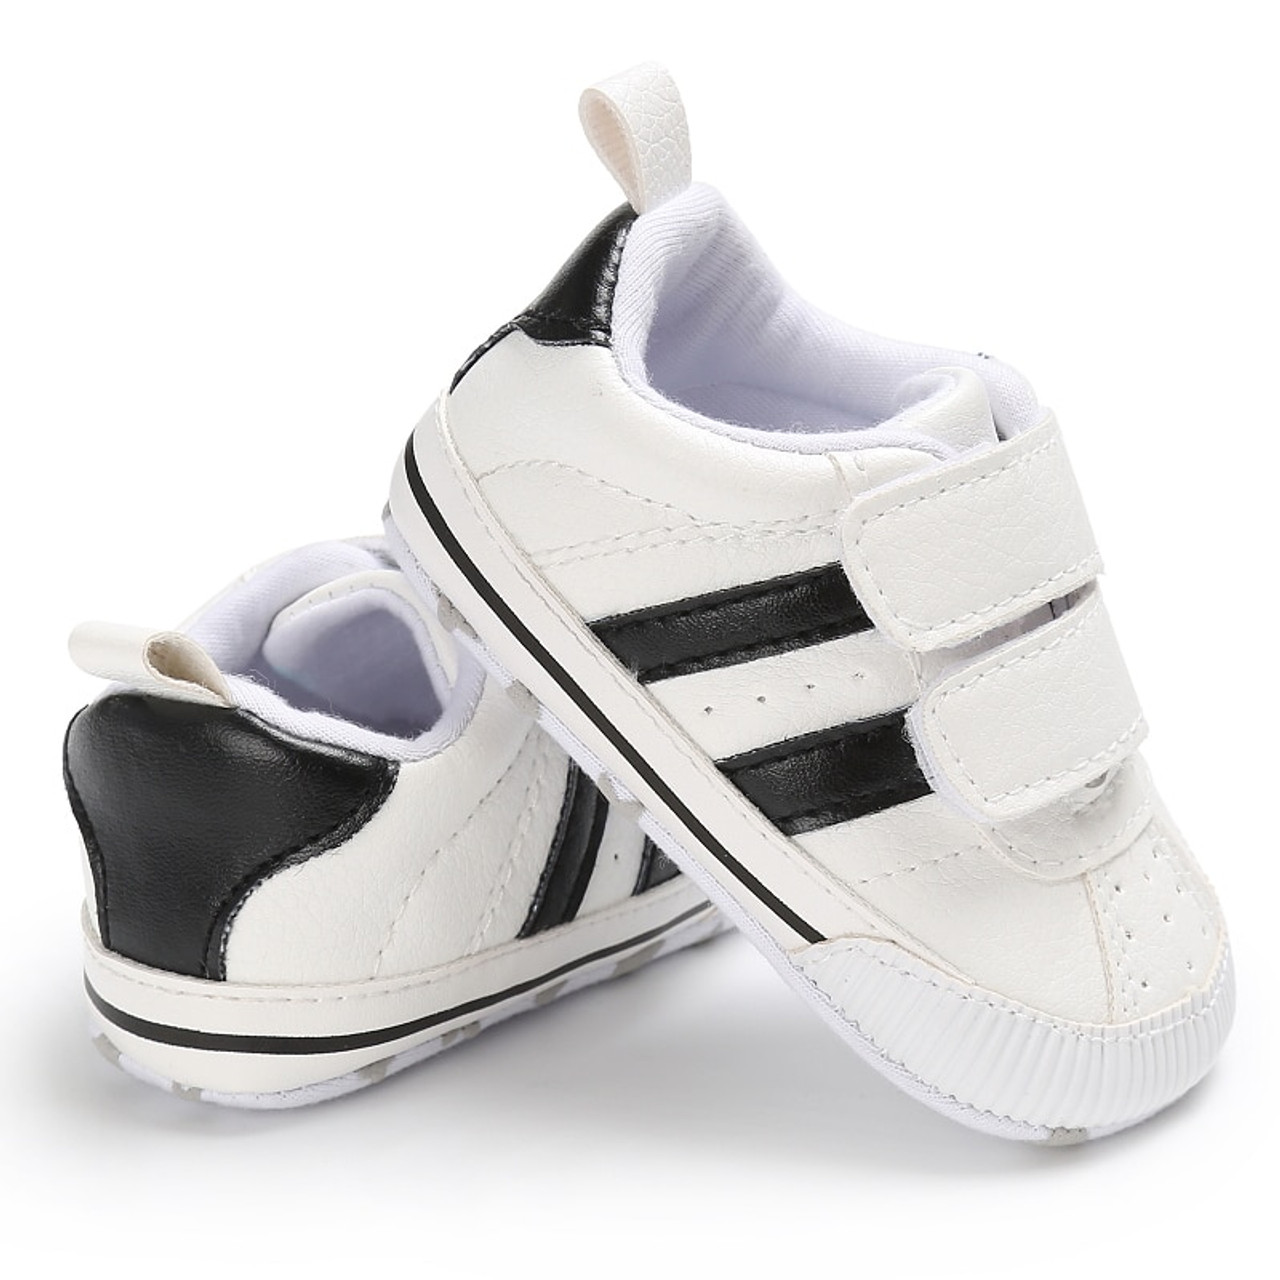 0e3d32fe040 2019 Newborn Baby Boys Girls Soft Sole Prewalker Shoes Infant Toddler  Sneaker Shoes for 0- ...